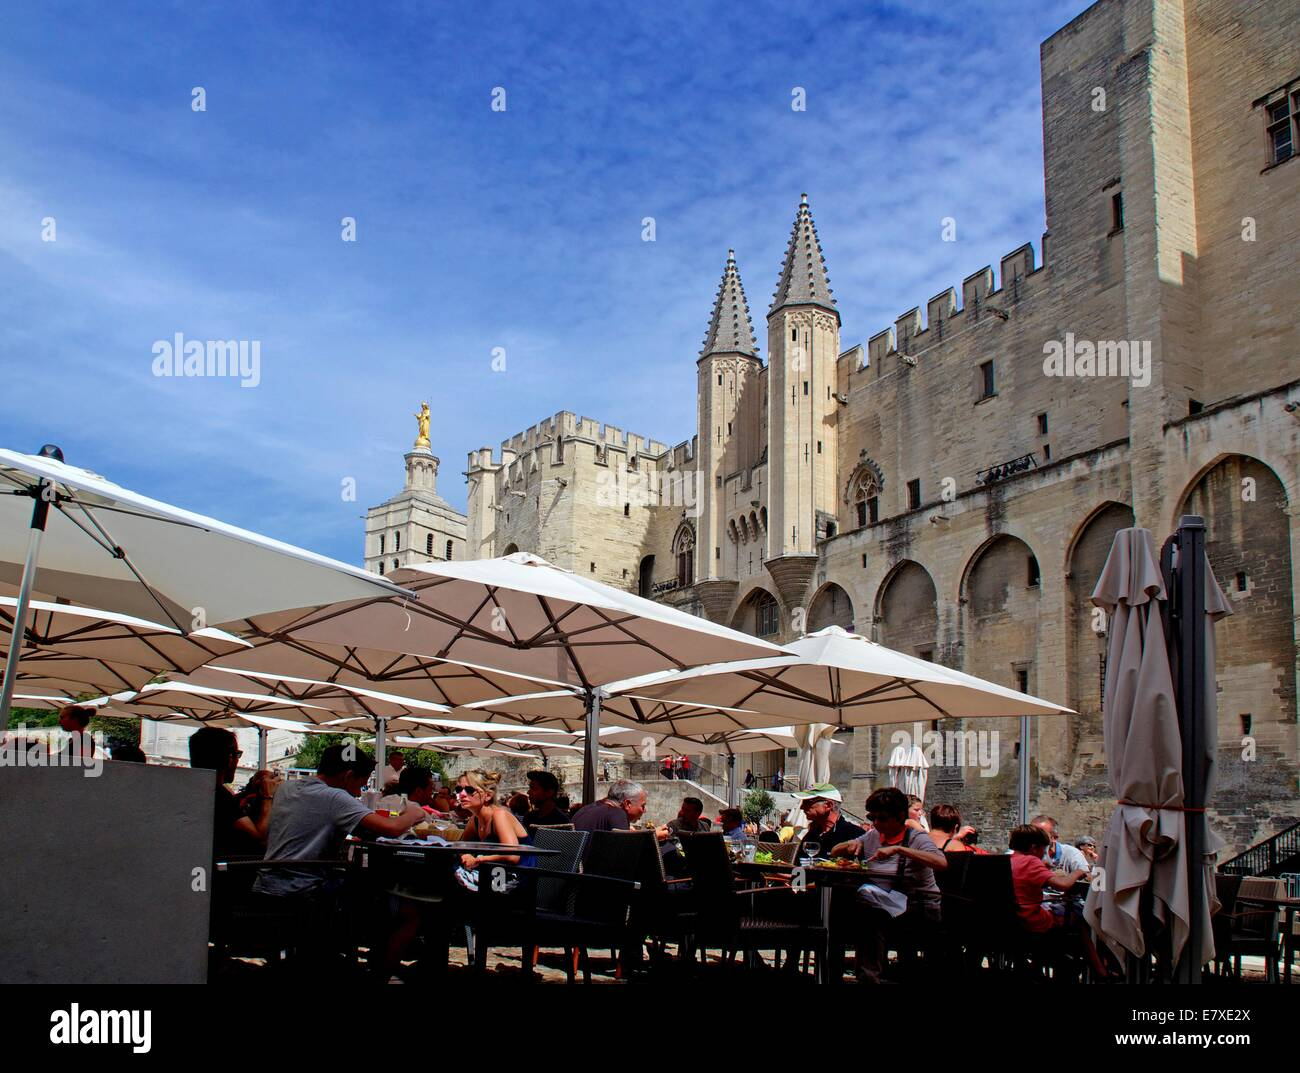 Palais des Papes or Palace of the Popes. UNESCO World Heritage , Avignon, Vaucluse, Languedoc-Roussillon, France, - Stock Image